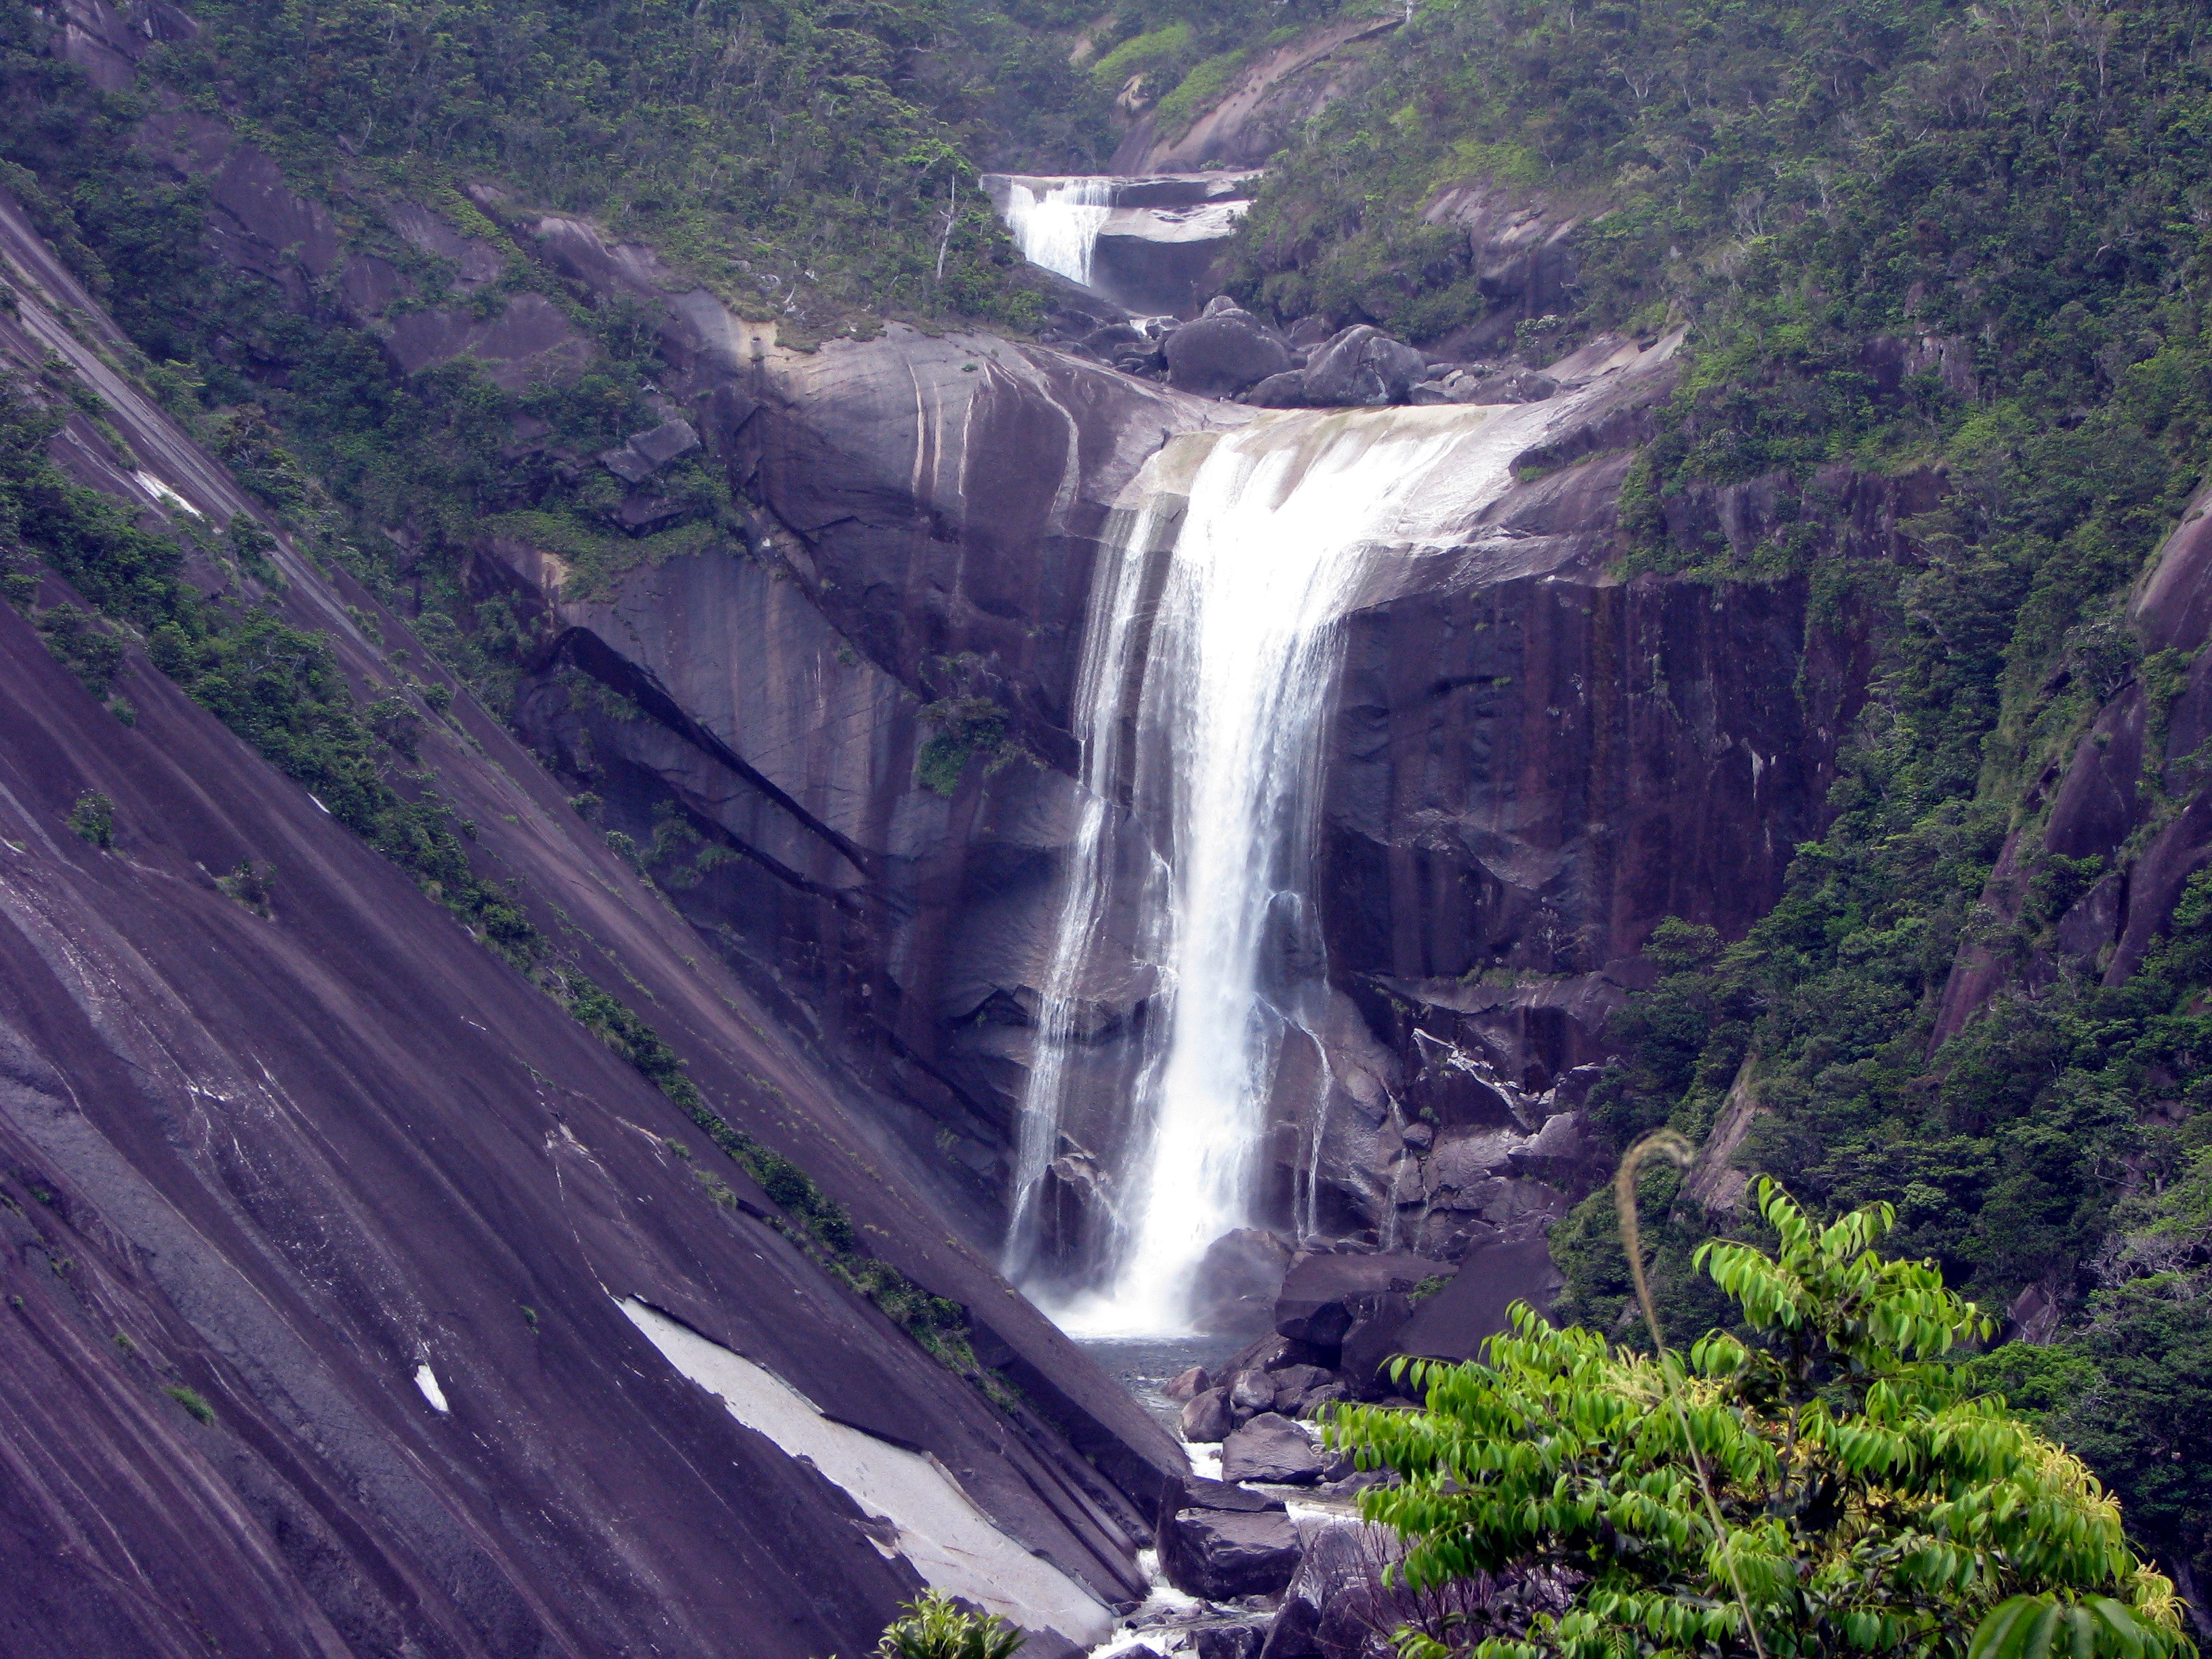 https://upload.wikimedia.org/wikipedia/commons/4/46/Senpiro_Fall_Yakushima_01.jpg